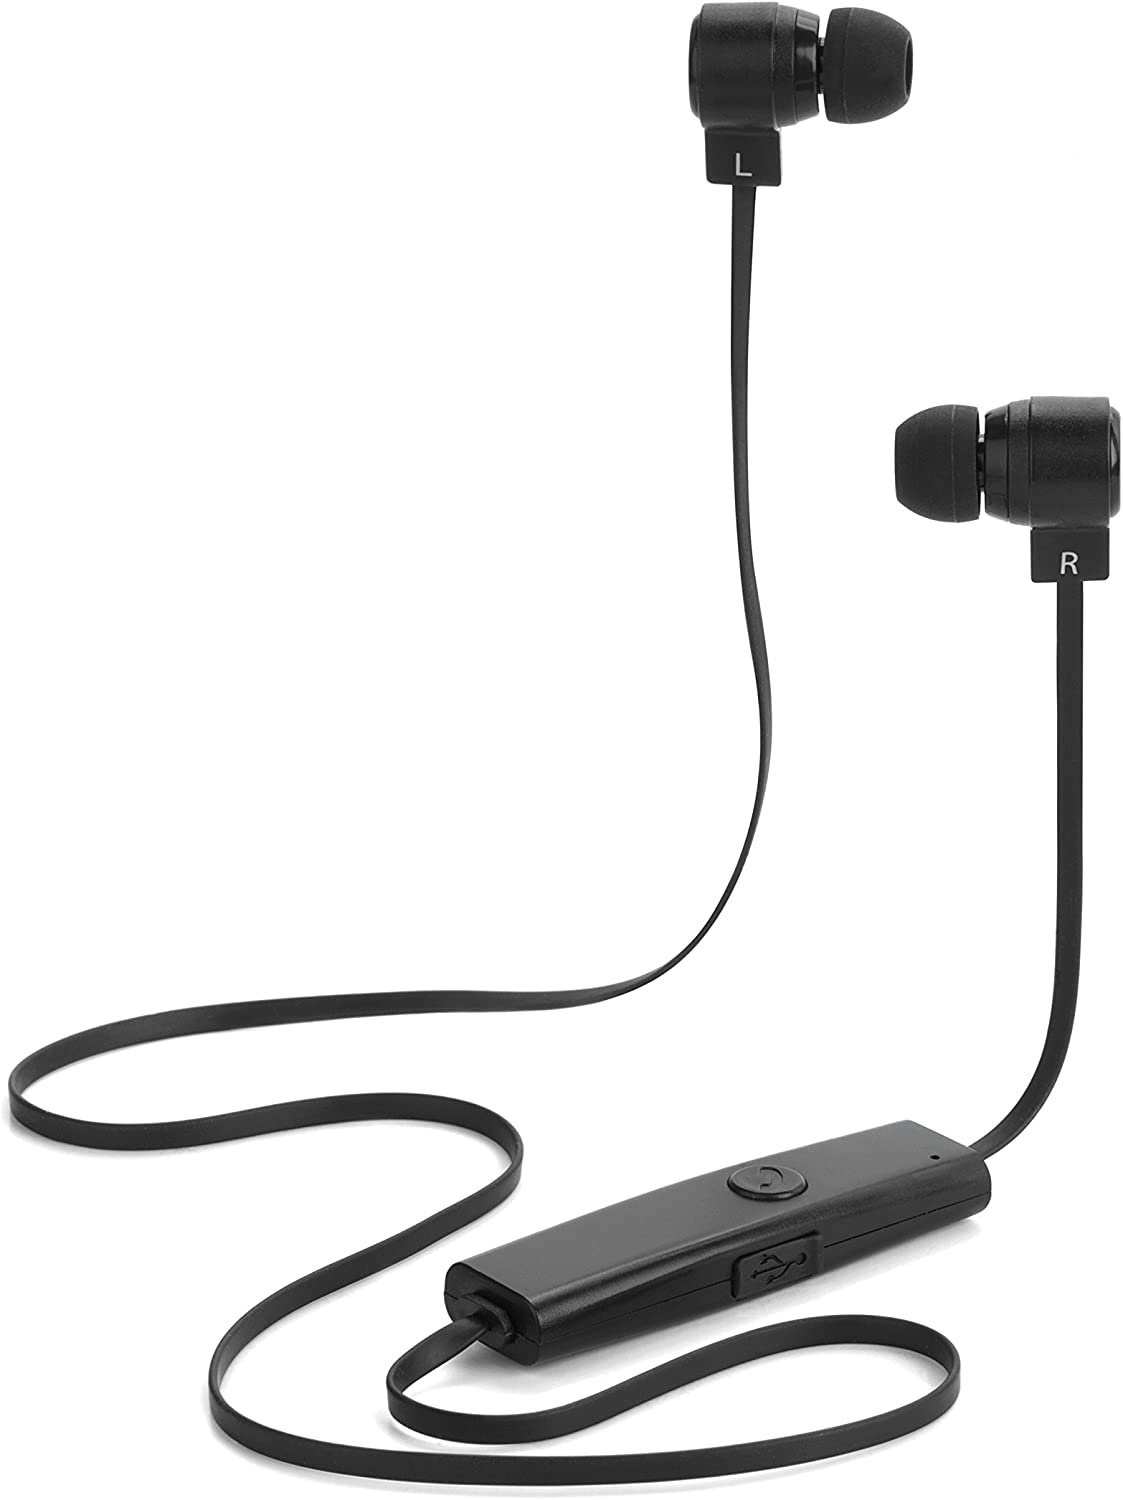 INTEMPO EE1249 Round Head Wireless Bluetooth Headphones for iPhones, Androids and Other Smart Devices, 10 m Wireless Range, Built-In Hands-Free Microphone, Including 3 Sets of Earbuds, Black